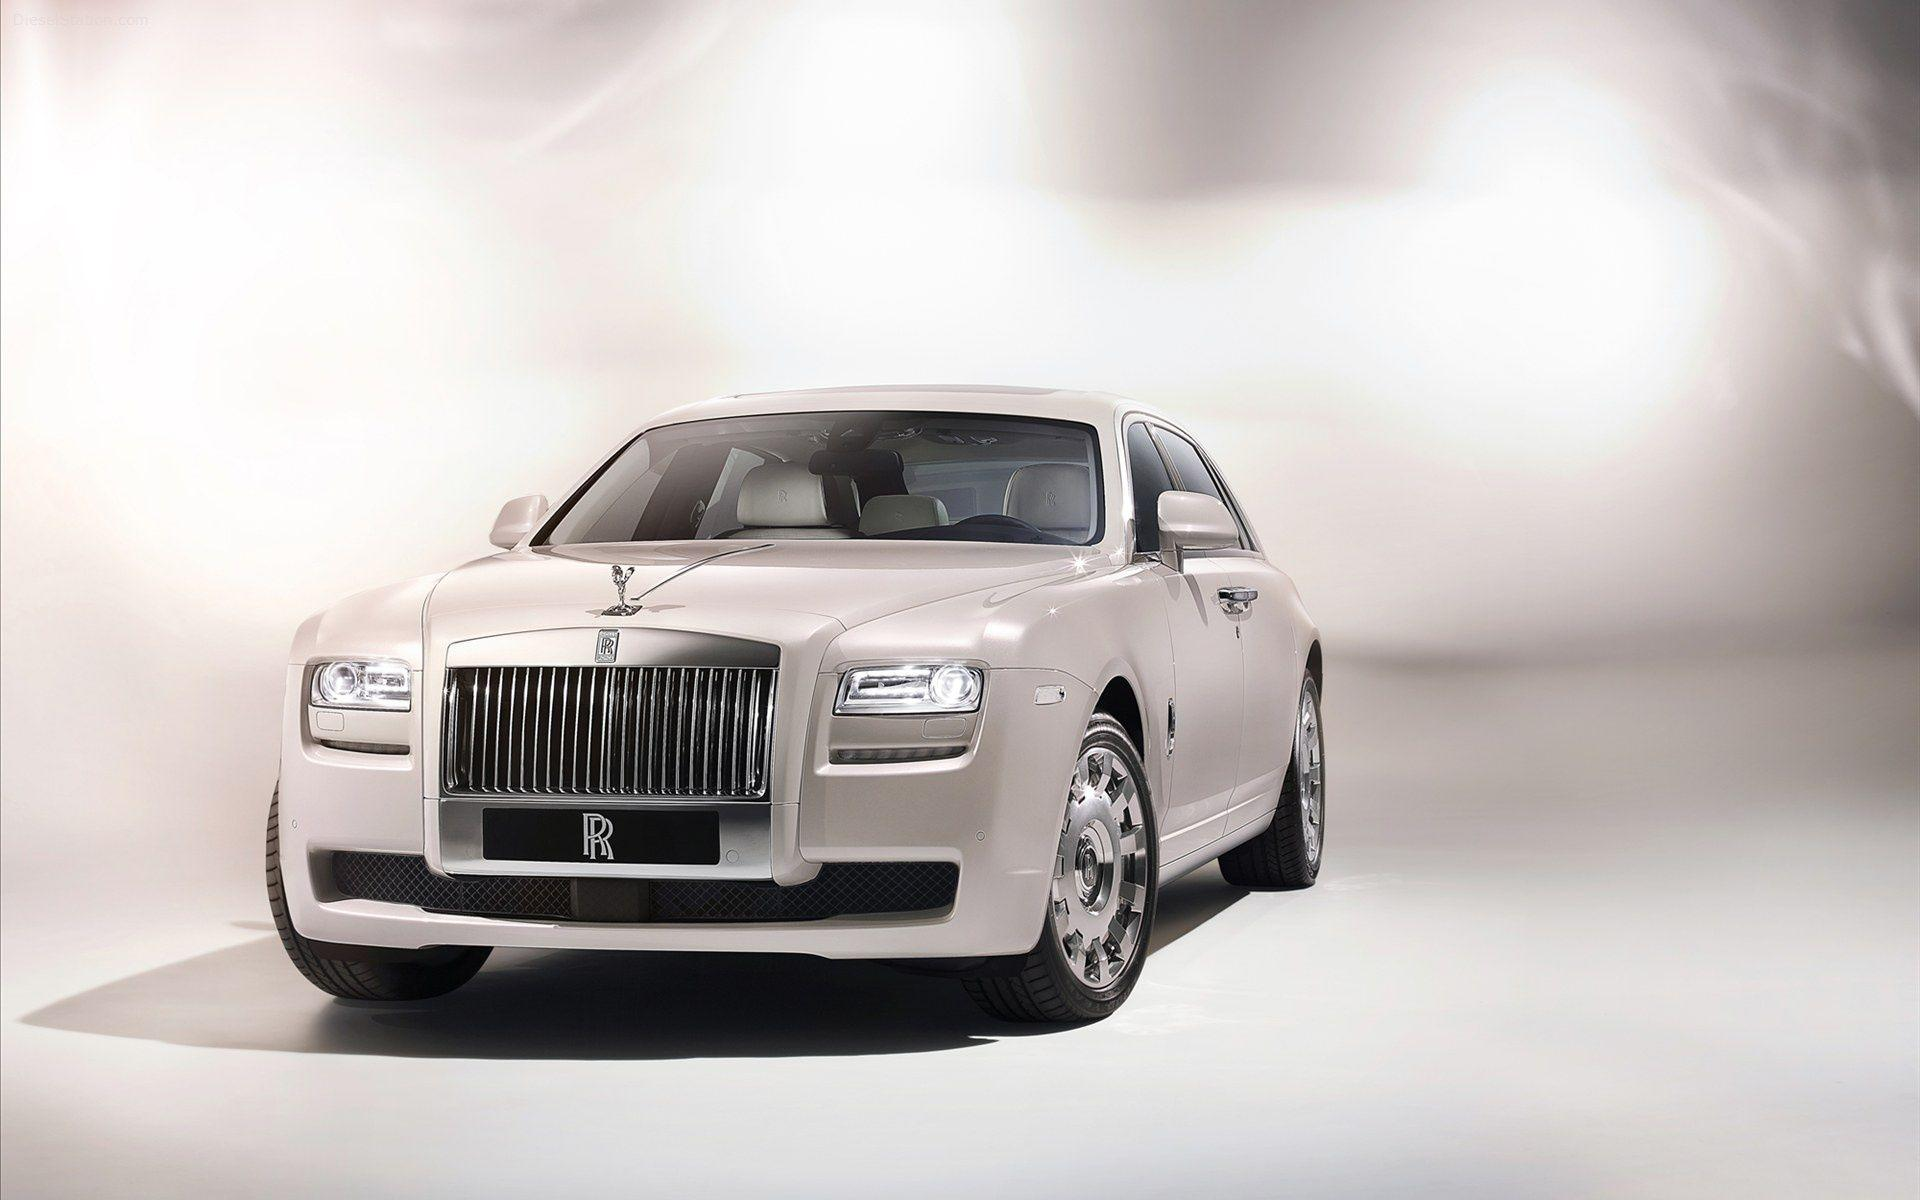 Rolls Royce Ghost Whit HD Wallpaper, Backgrounds Image